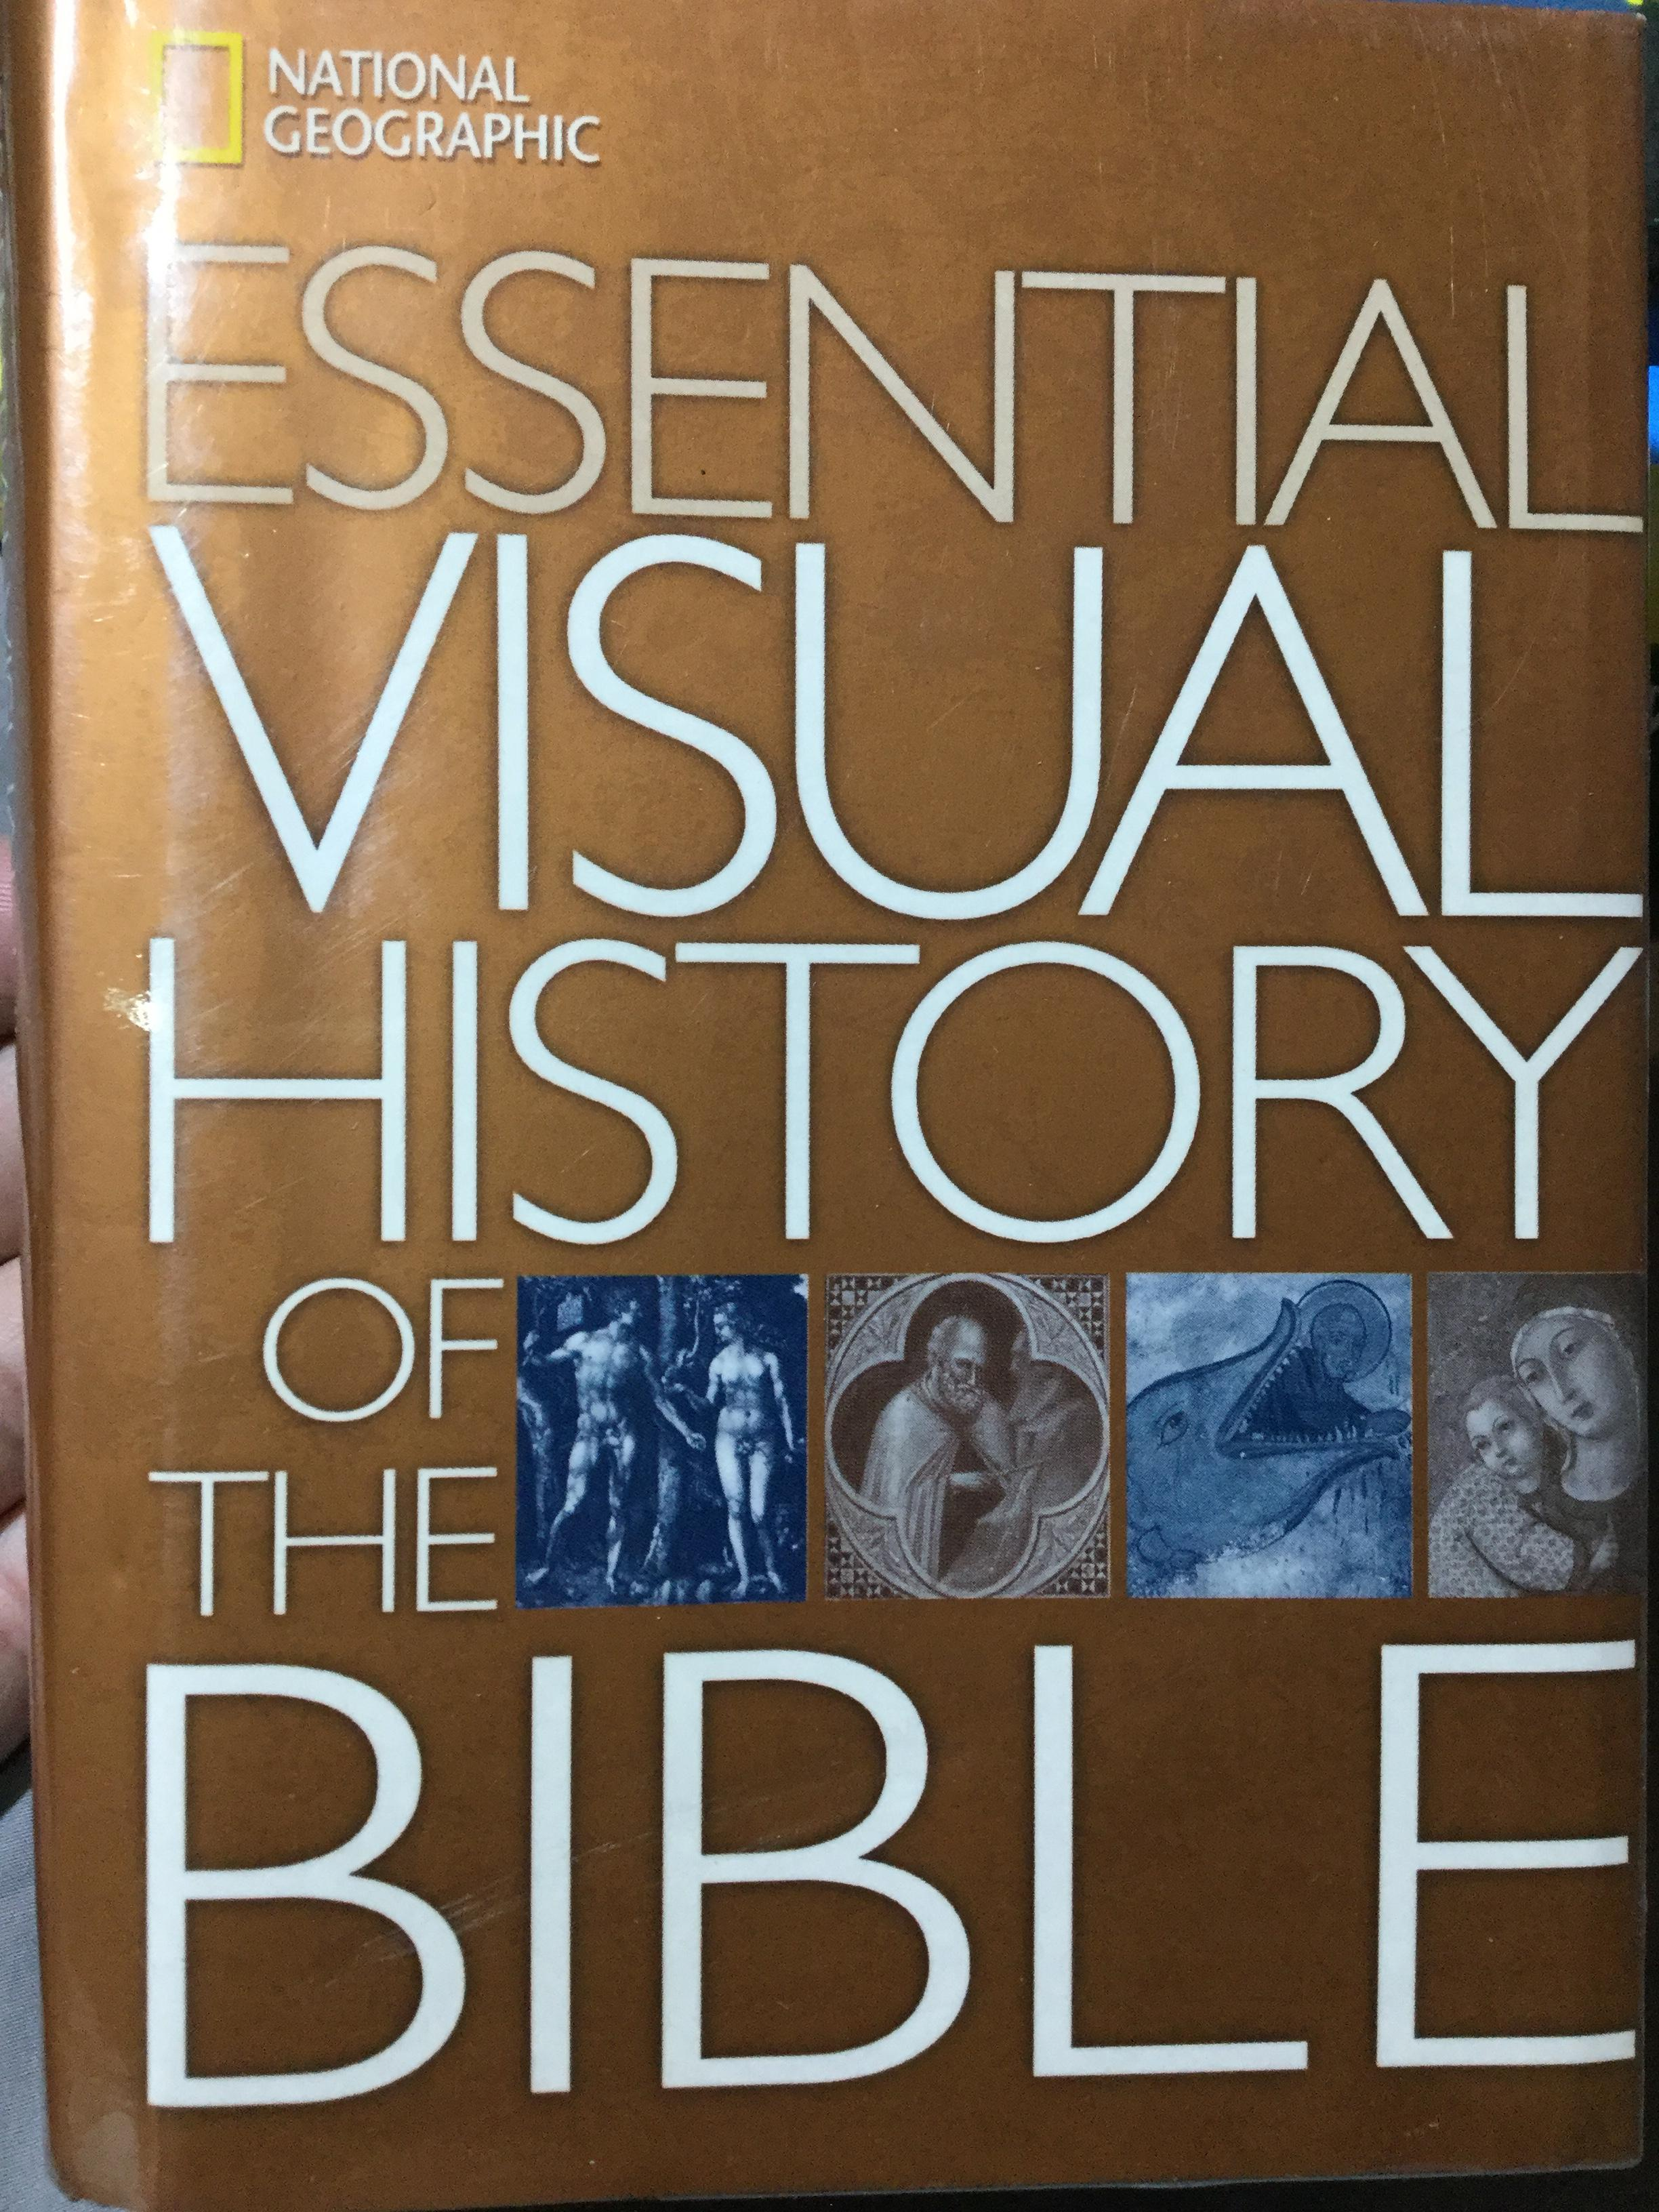 Essential Visual History of The BIBLE by NATIONAL GEOGRAPHIC